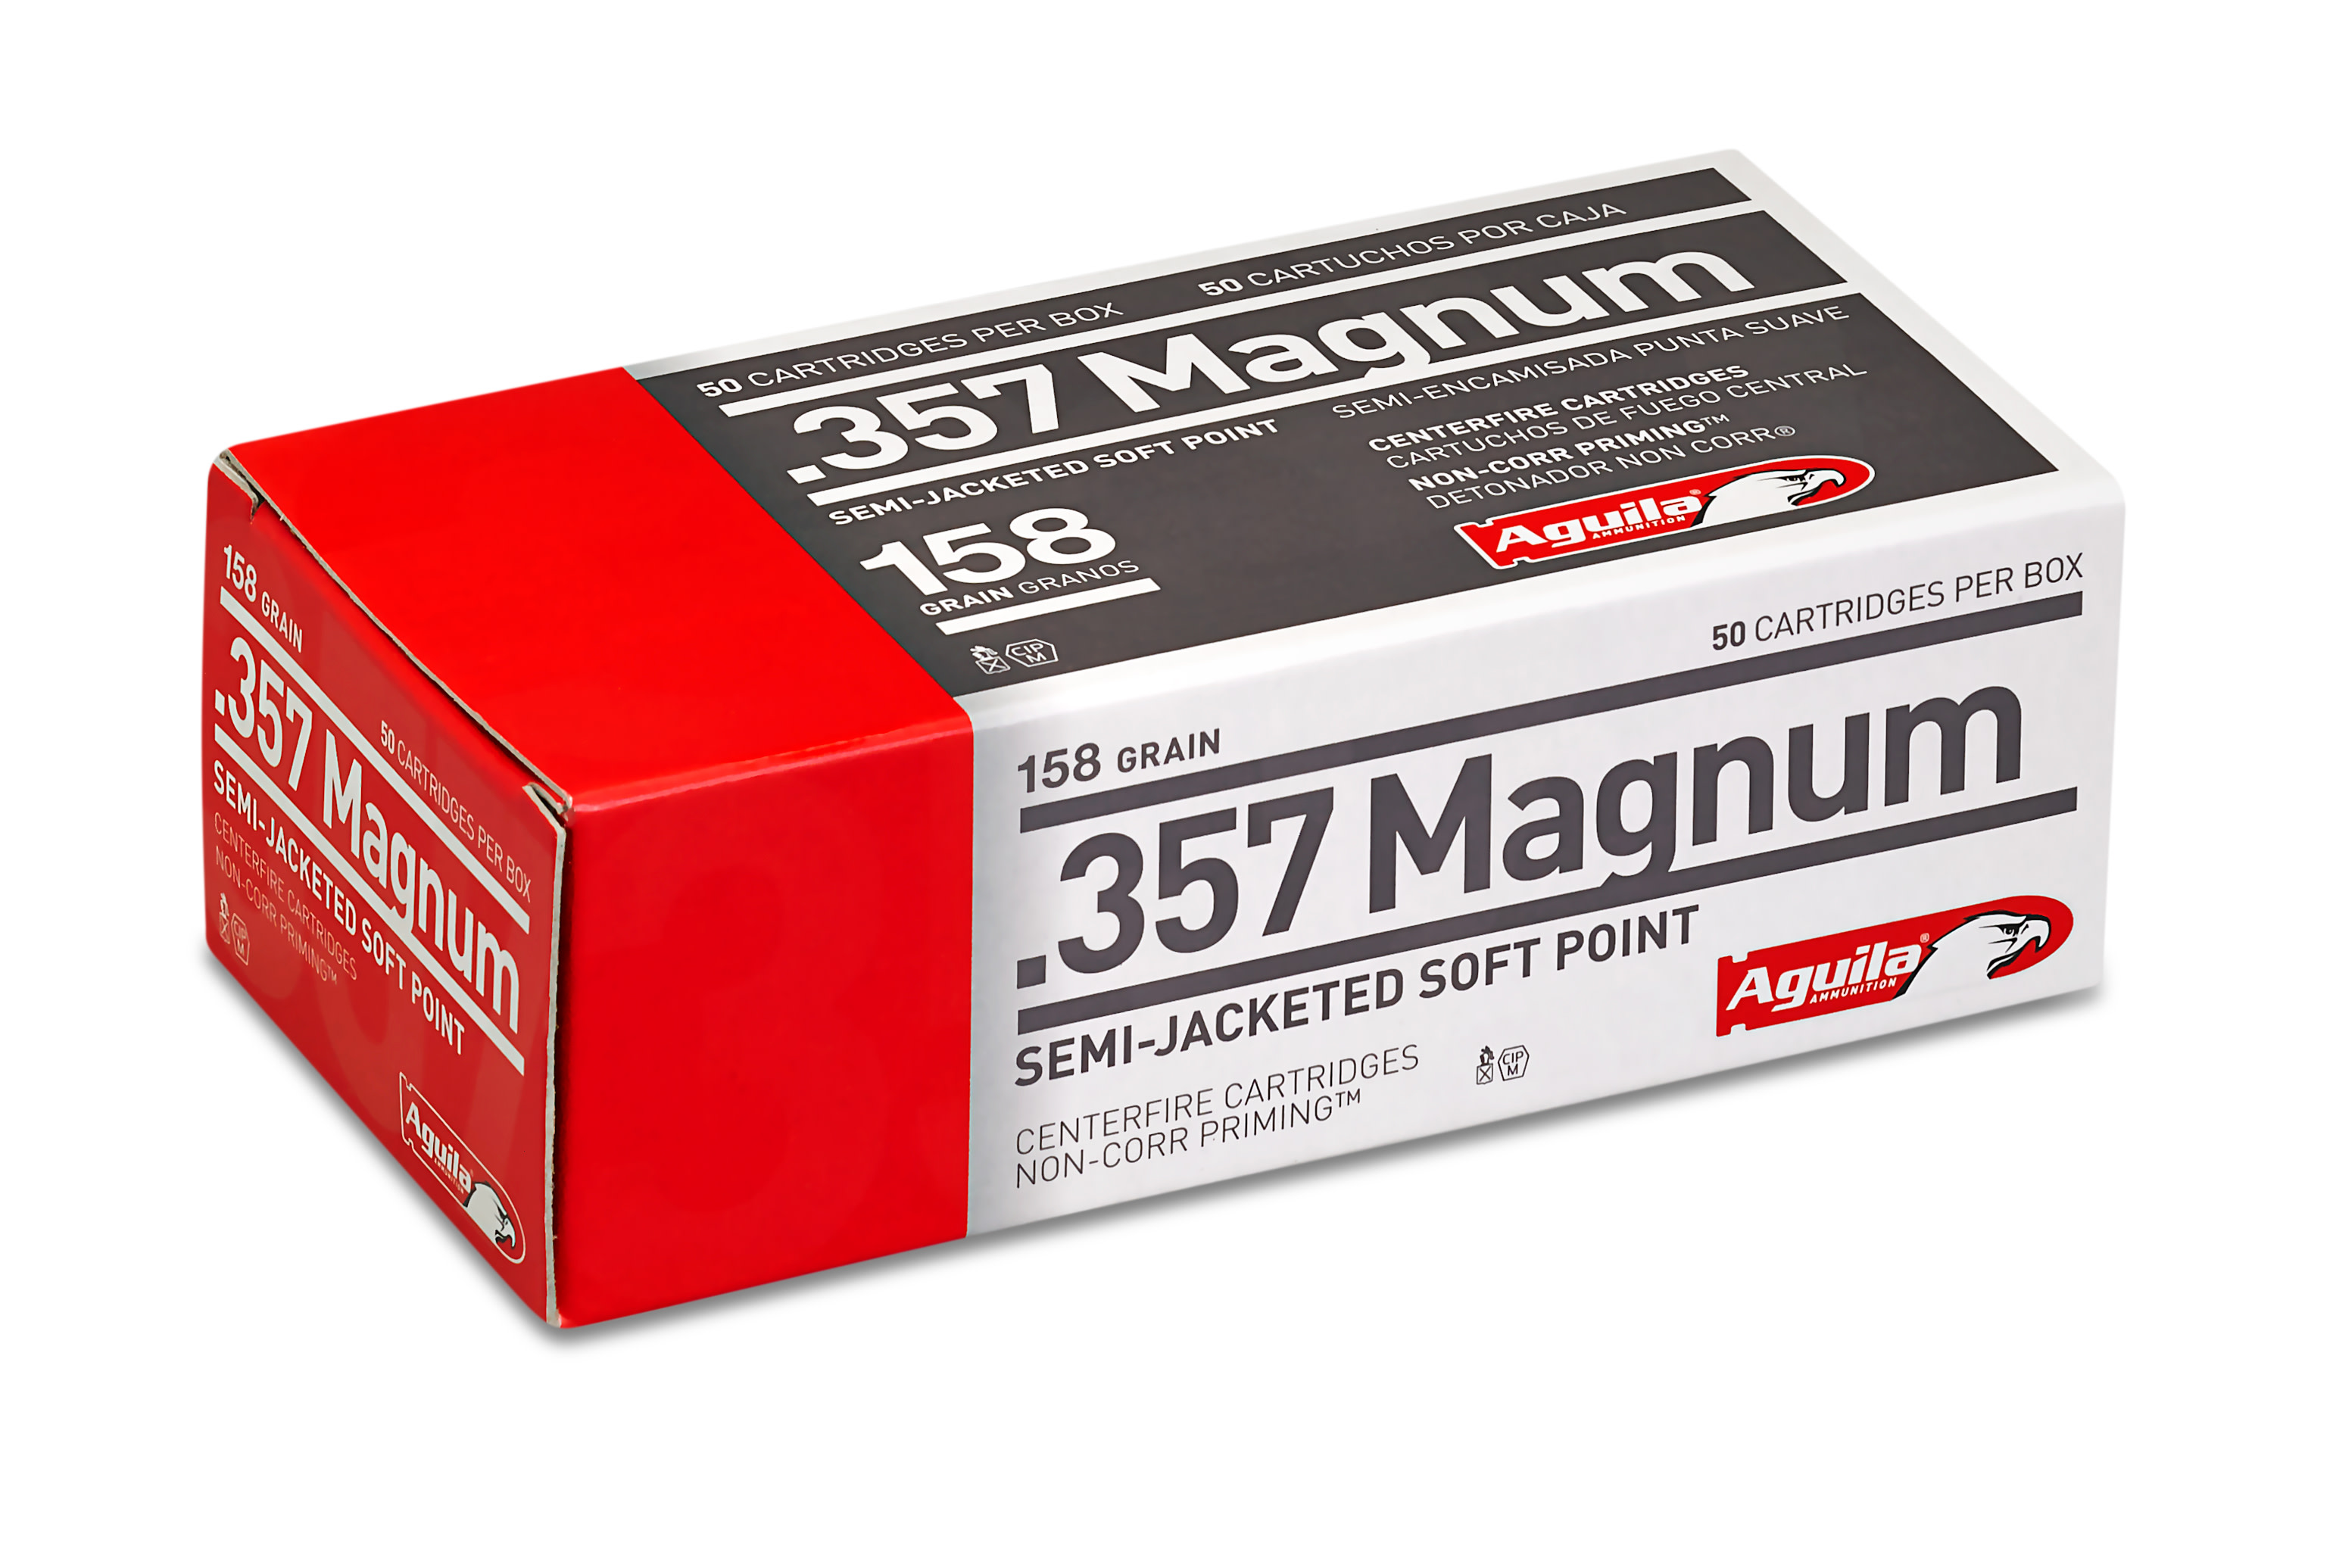 Aguila Ammunition 357 Magnum 158 Grain Semi-Jacketed Soft Point Per 50